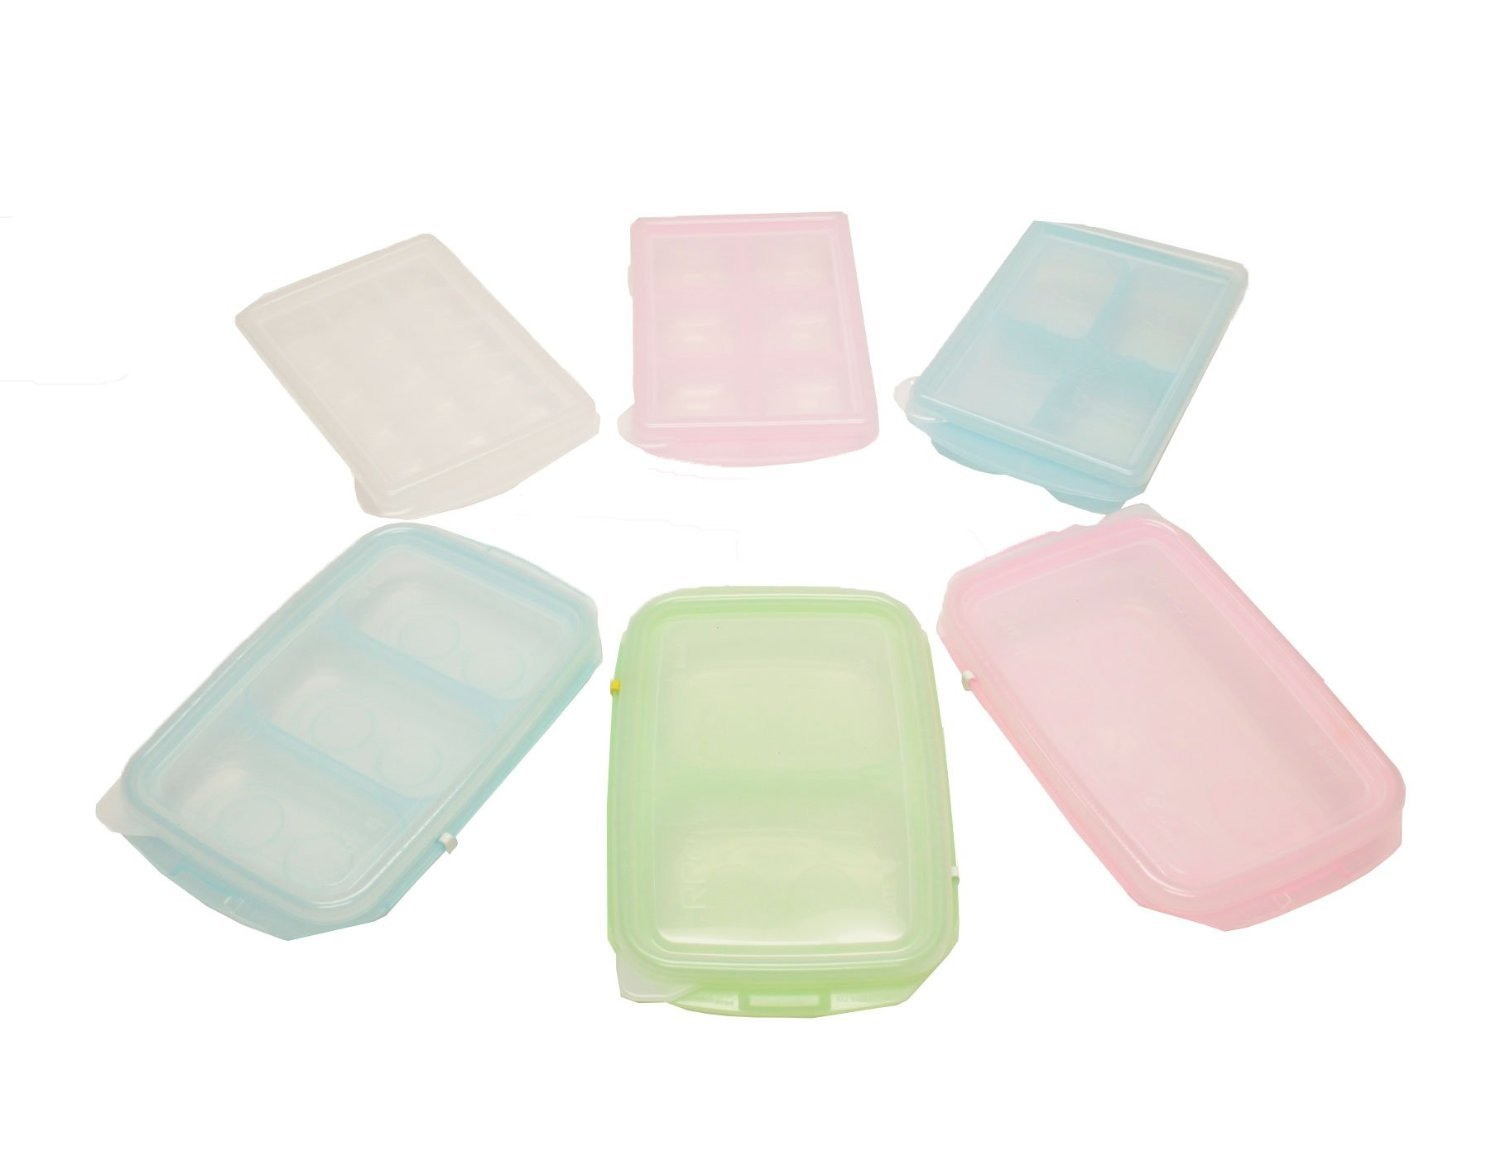 HSI Easily Pop Out 1, 2, 3, 4, 6, 15 Compartments Ice Cube, Baby Food sets, BPA-free PE Tray with Clear Lid in Multi Color, RRE Ice Cube Tray, Set of 6